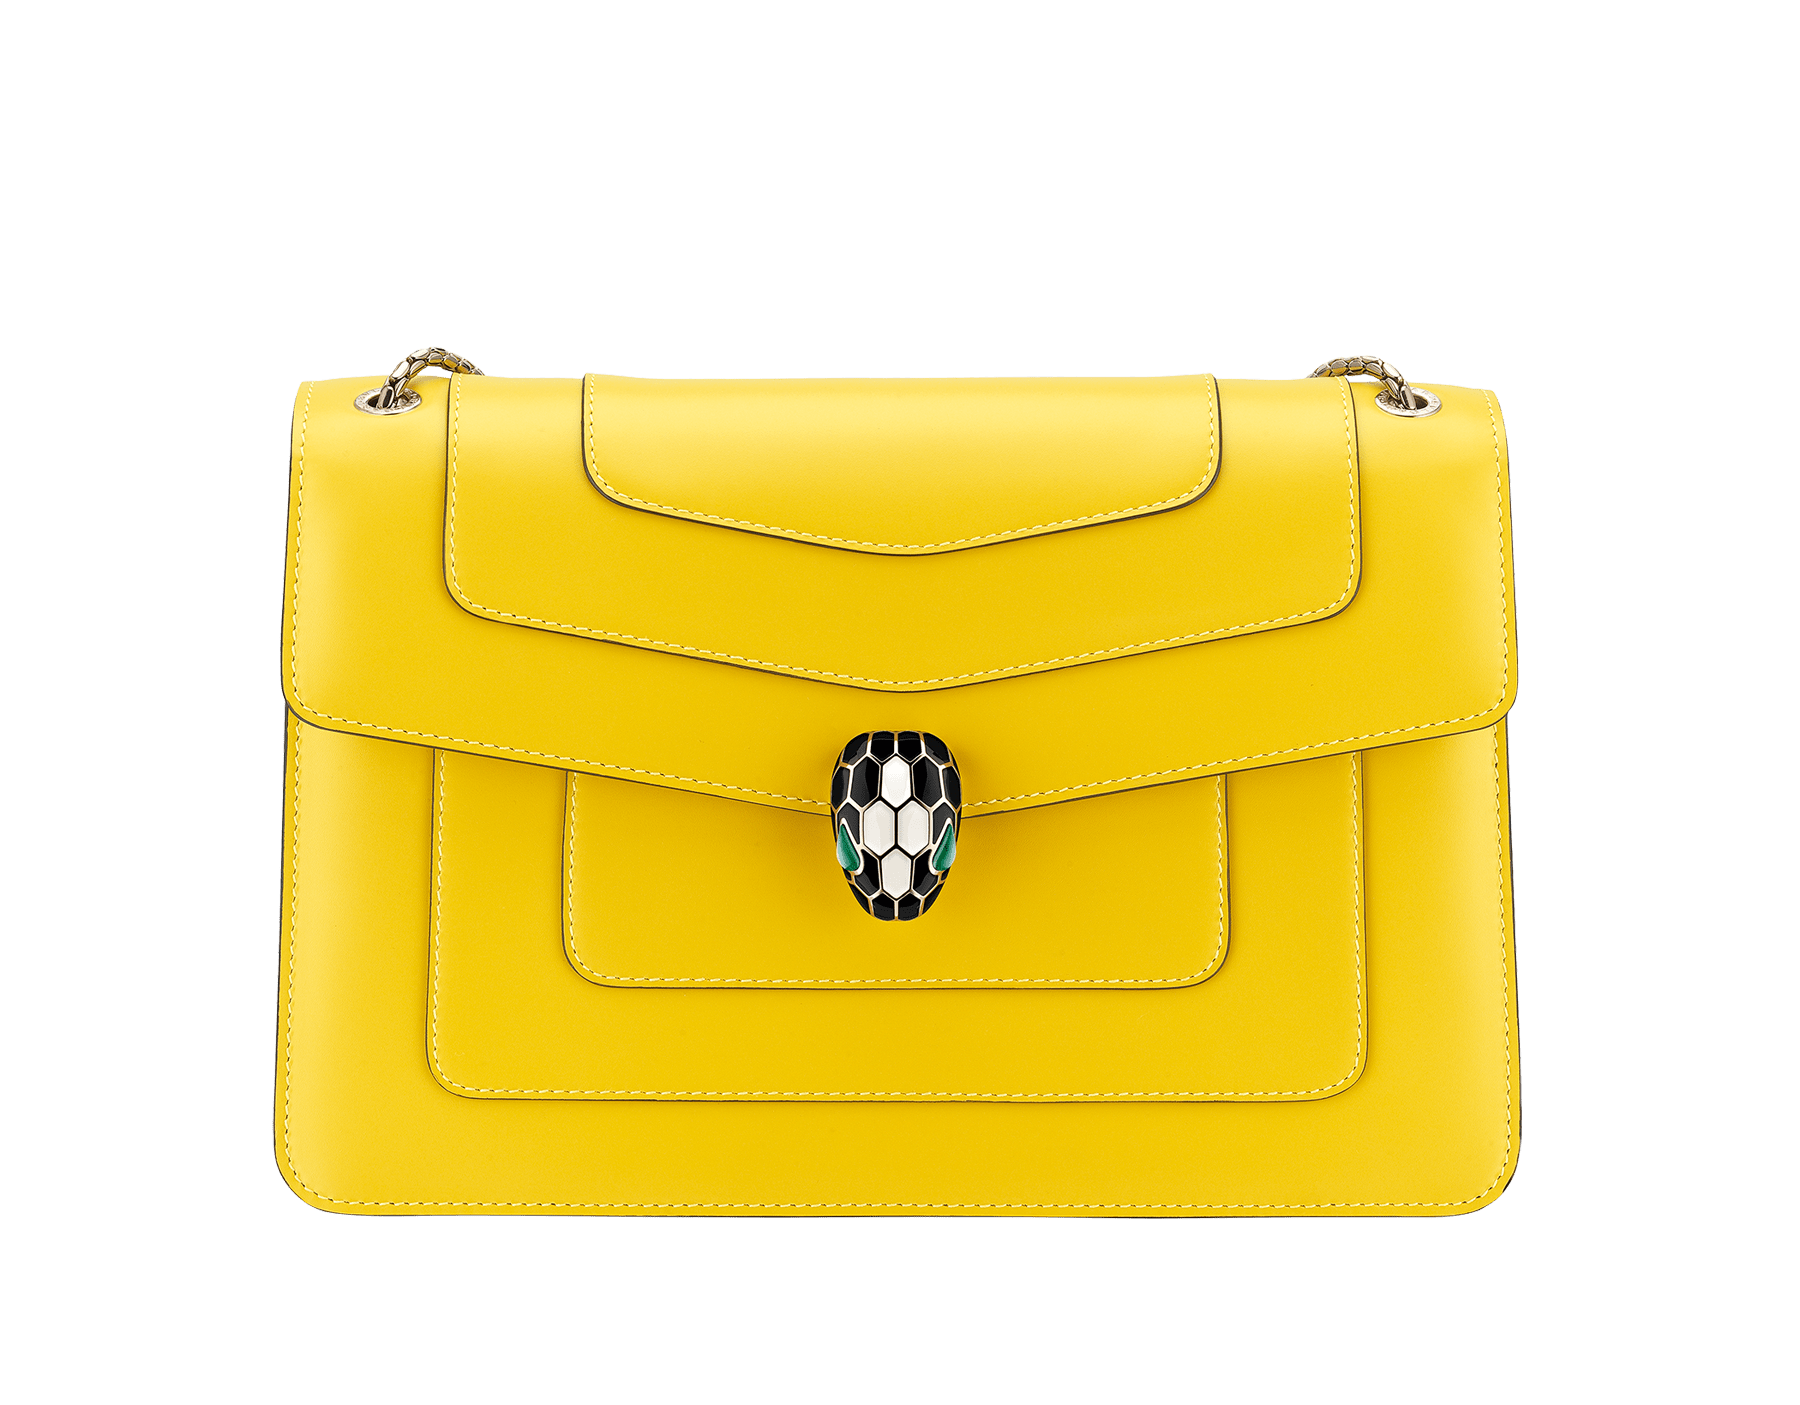 """Serpenti Forever"" shoulder bag in daisy topaz calf leather. Iconic snakehead closure in light gold-plated brass enriched with black and white enamel and green malachite eyes. 290191 image 1"